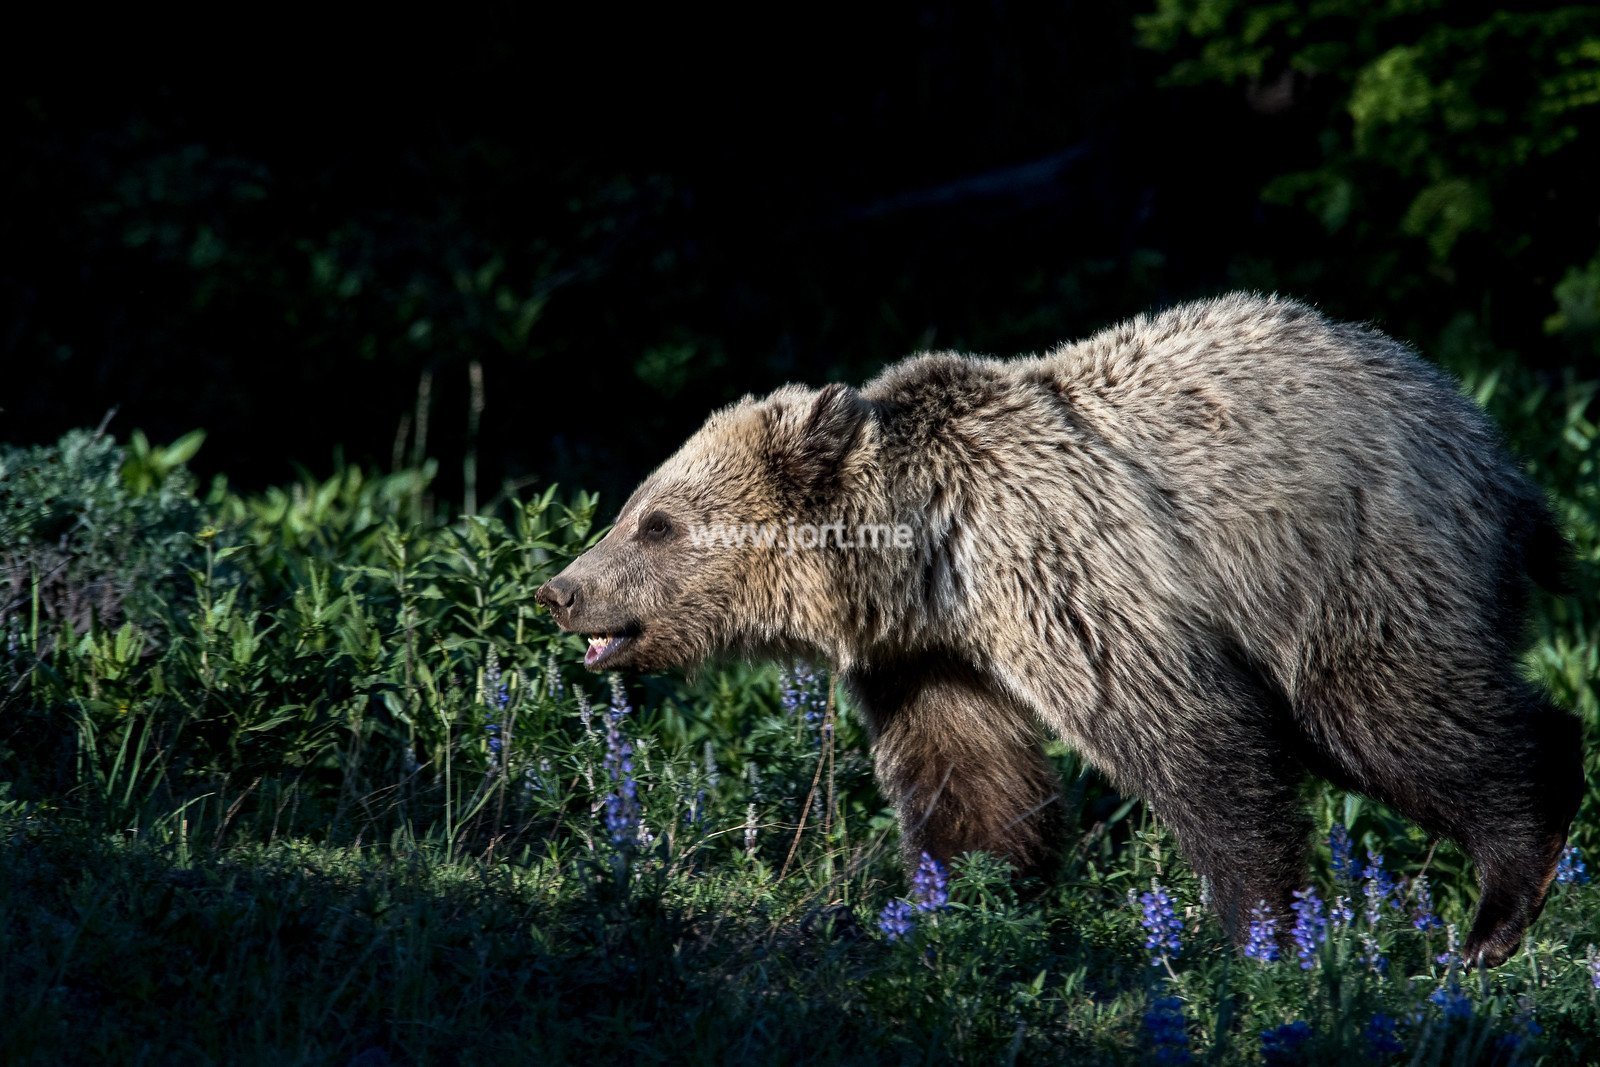 Sun rays on a running bear